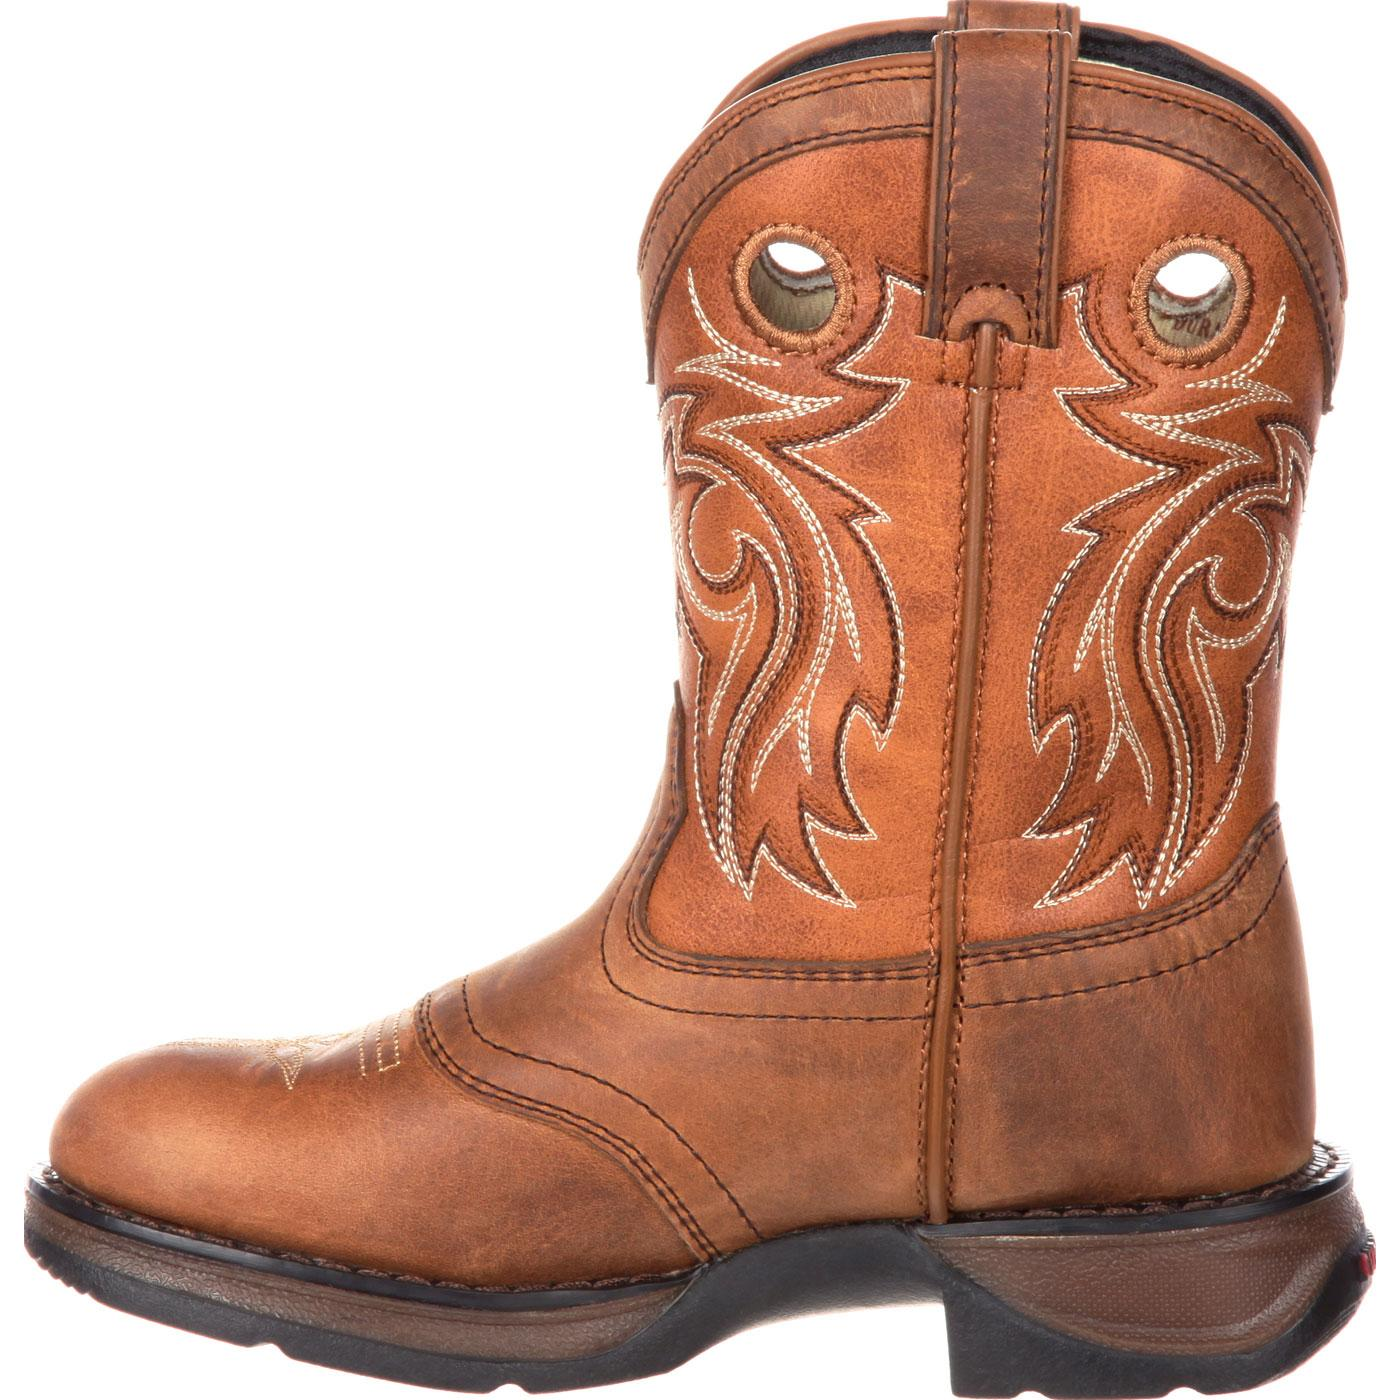 LIL' DURANGO® Big Kids' Western Saddle Boot